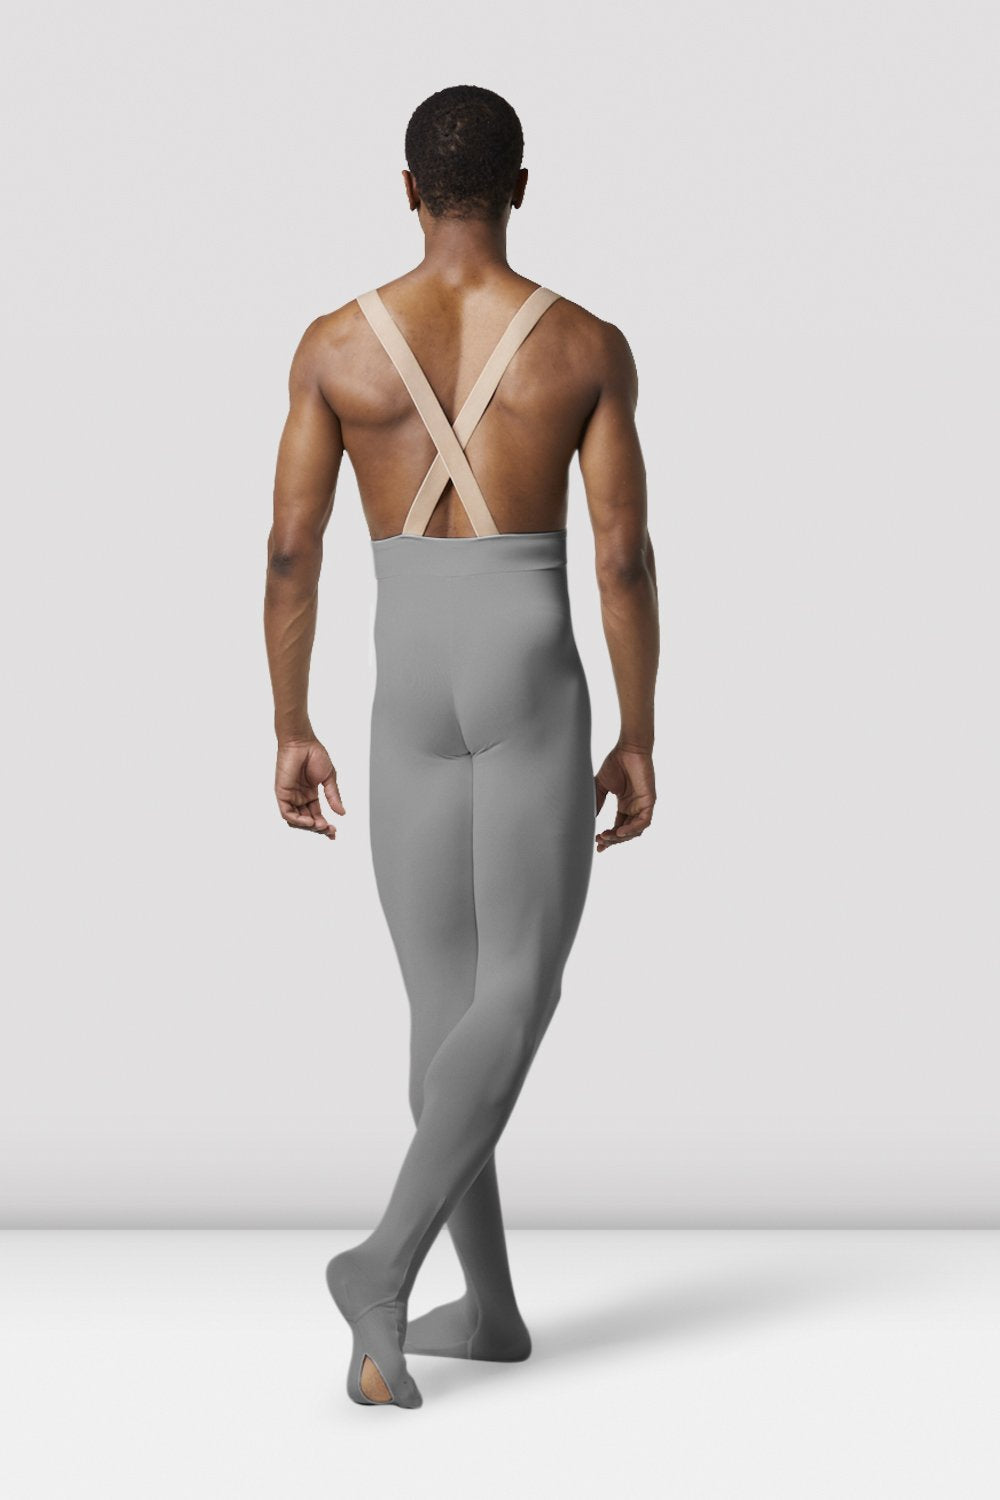 Gun metal Bloch Mens Performance Footed Dance Tight on male model in classical position with arms by side facing back